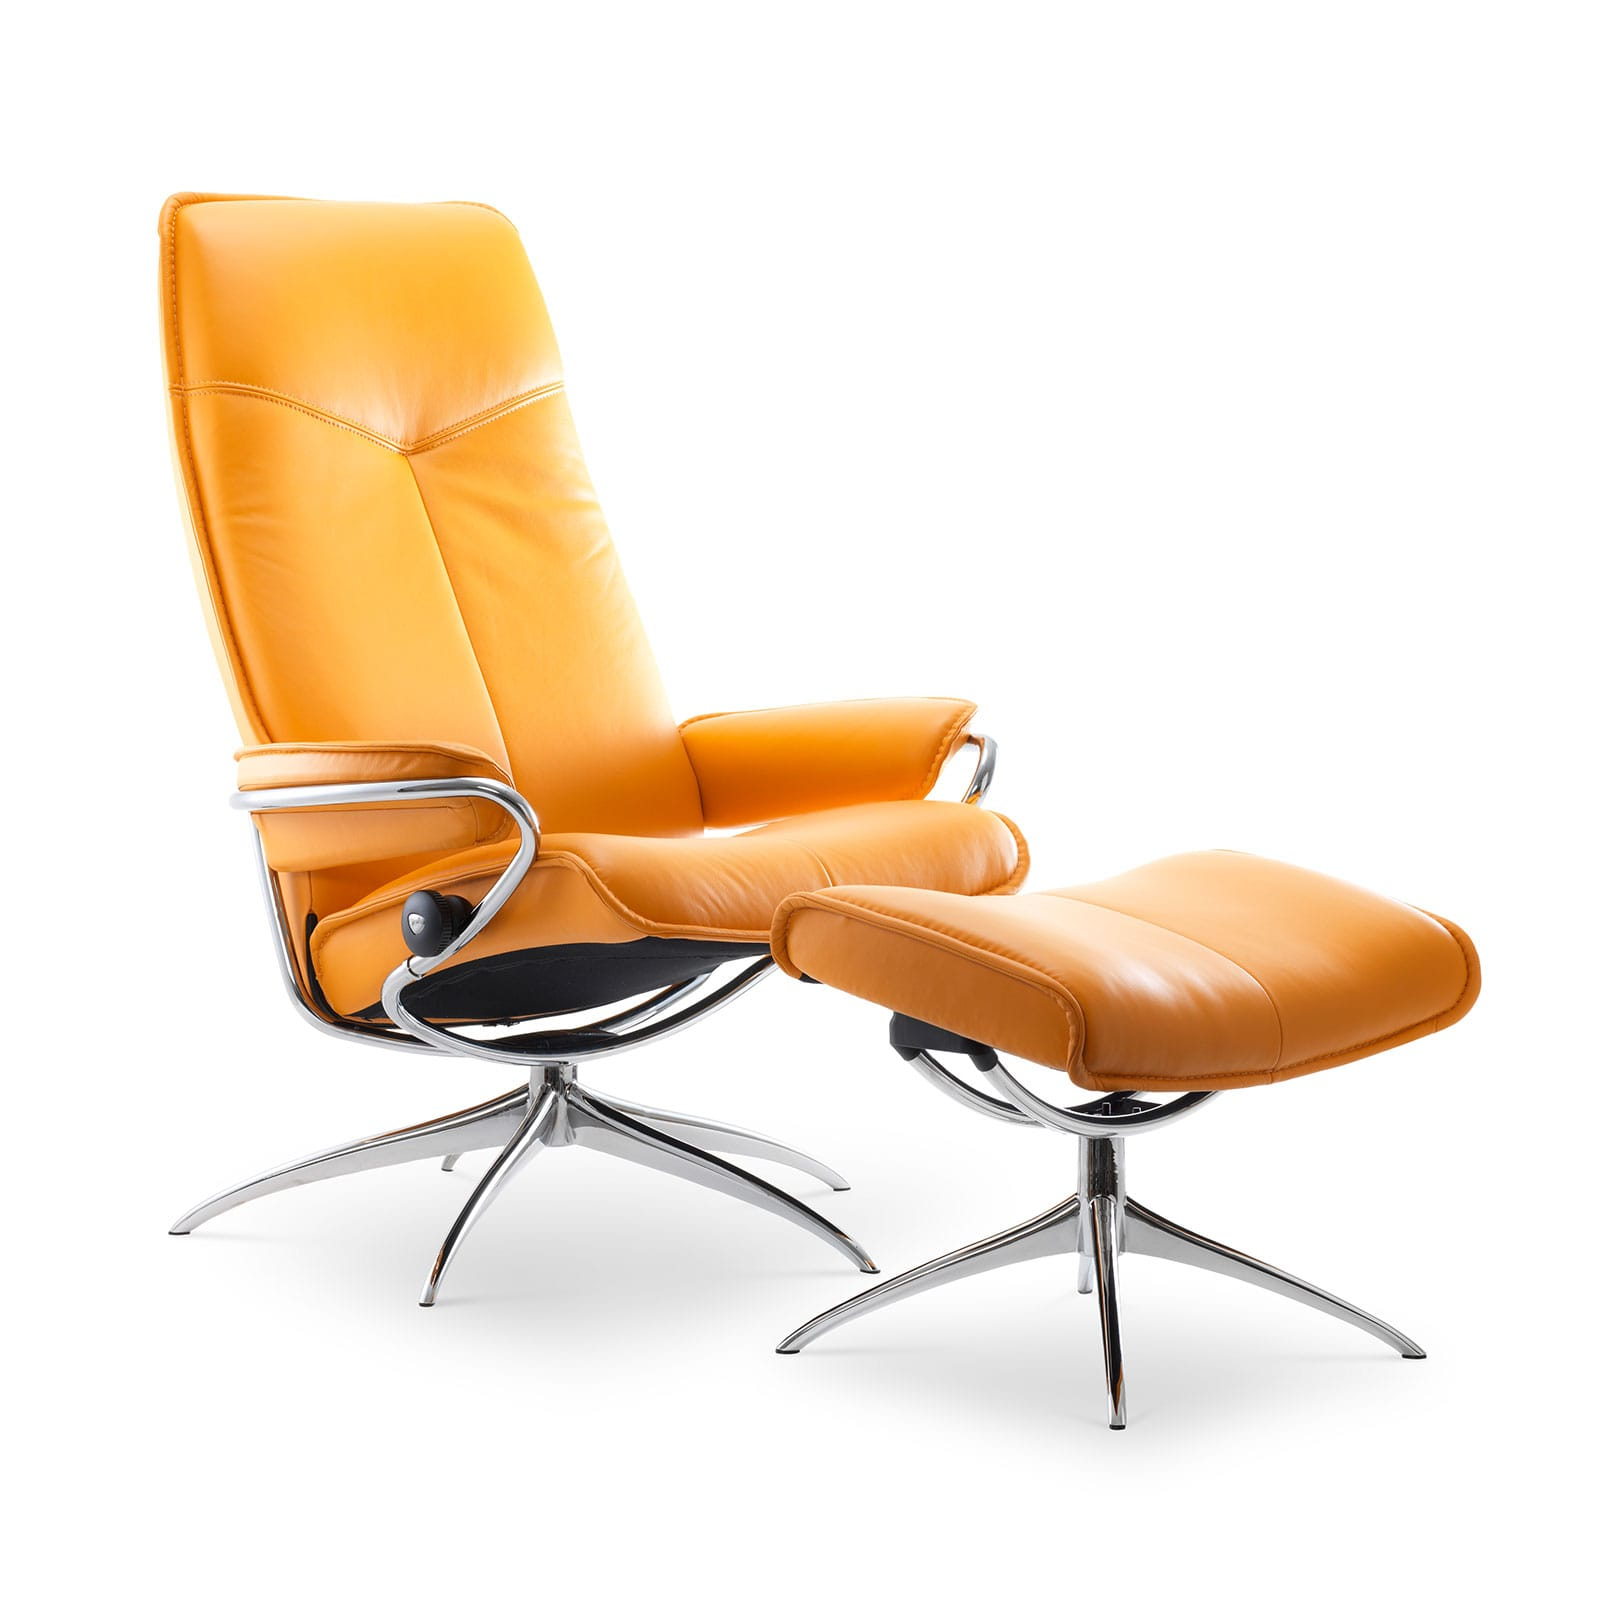 Stressless Sessel City High Back Stressless Sessel City High Back Paloma Clementine Mit Hocker